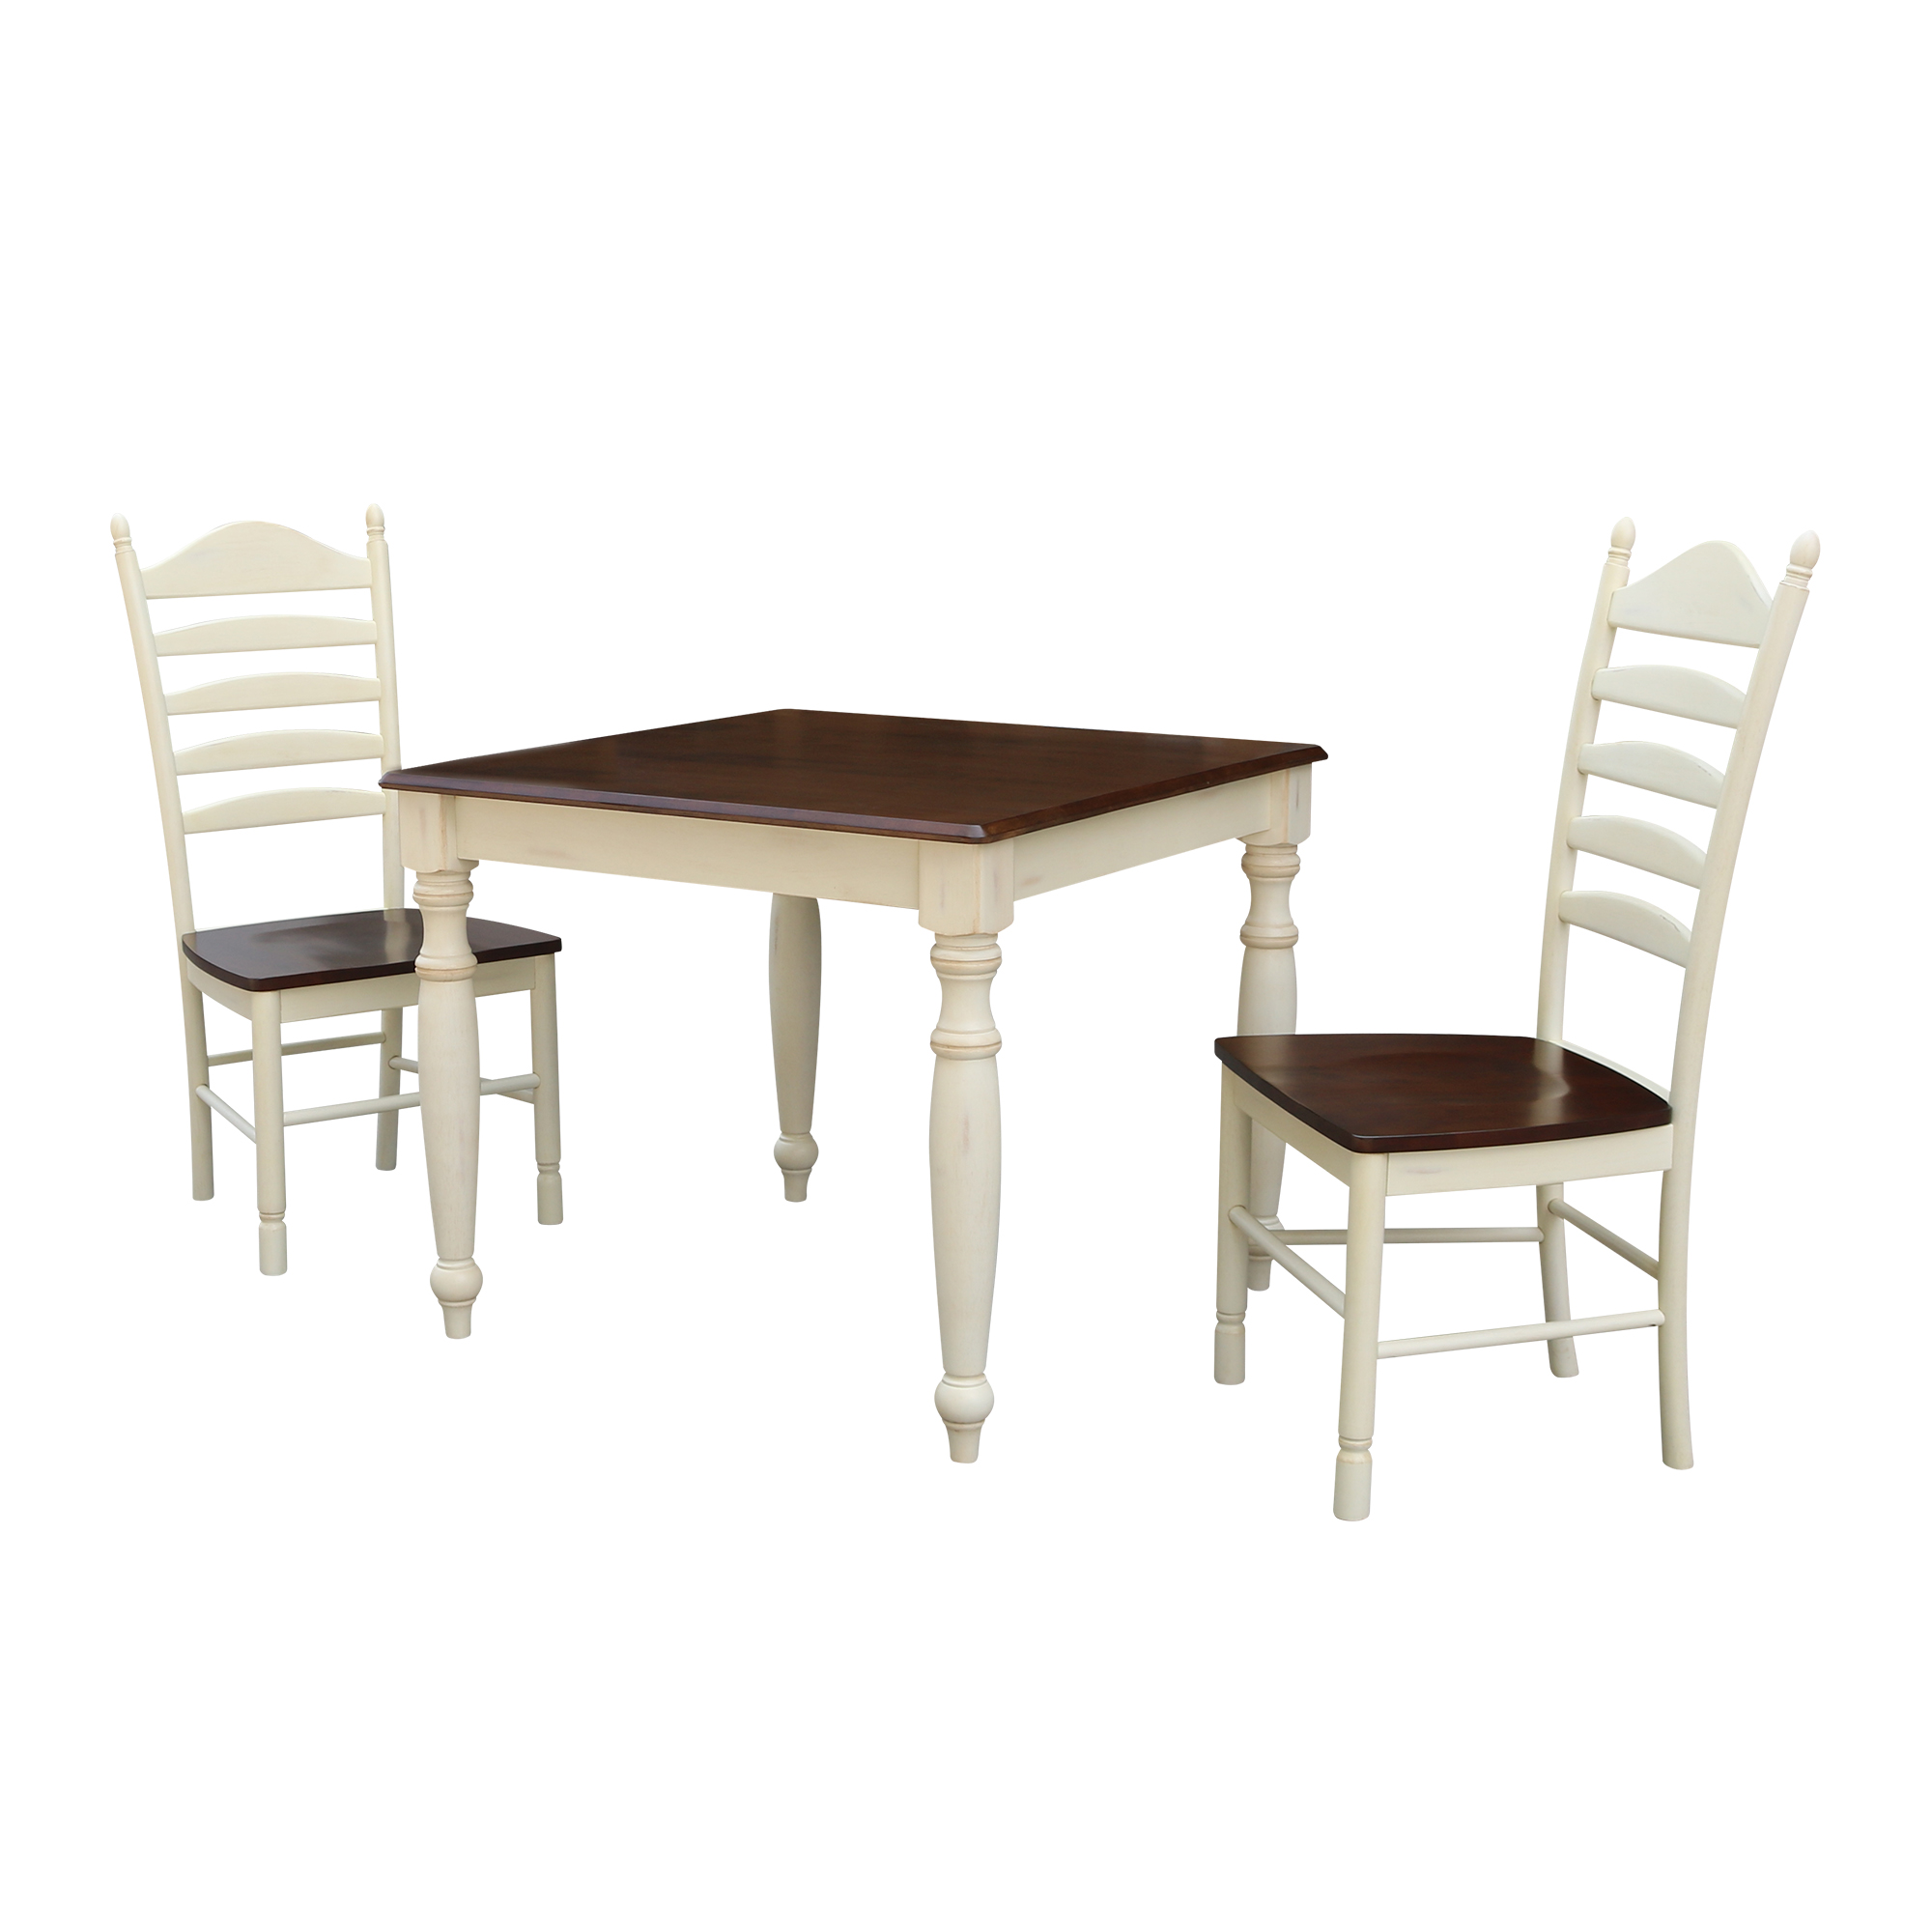 36x36 Dining Table With 2 Ladderback Chairs Alabaster Espresso 3 Piece Set